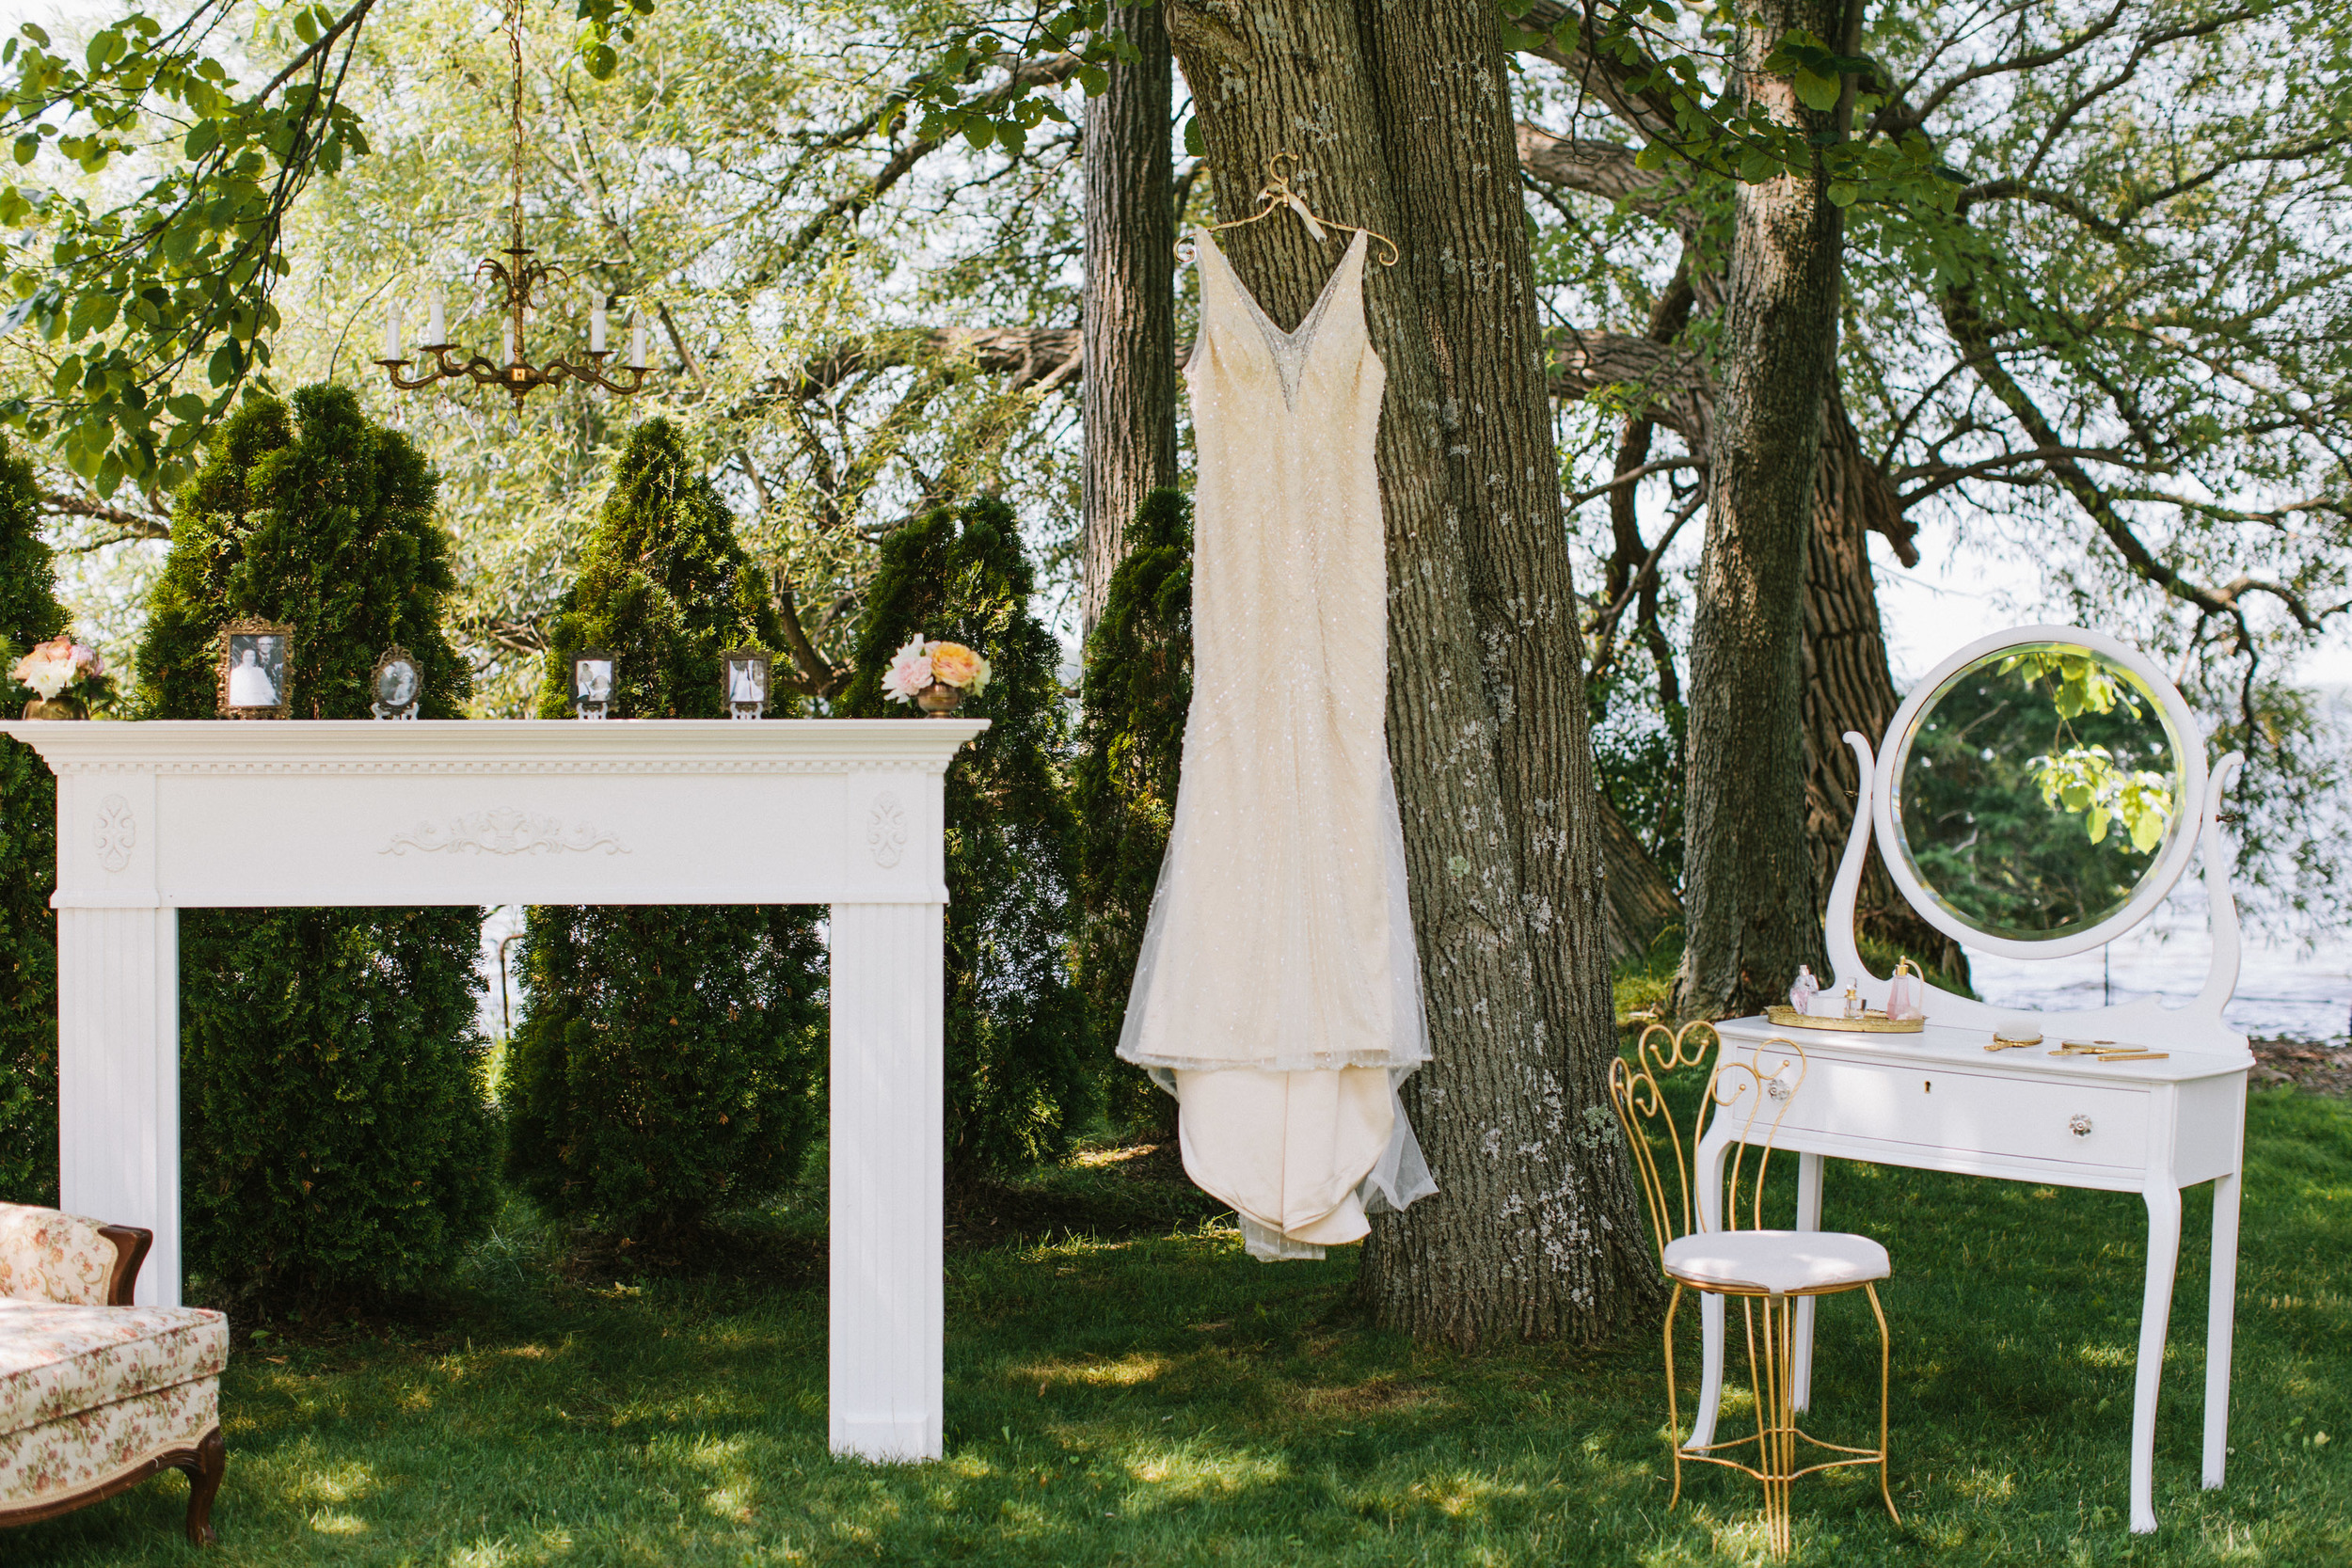 Bekki Draper - Ian - vintage - backyard-wedding-024.jpg